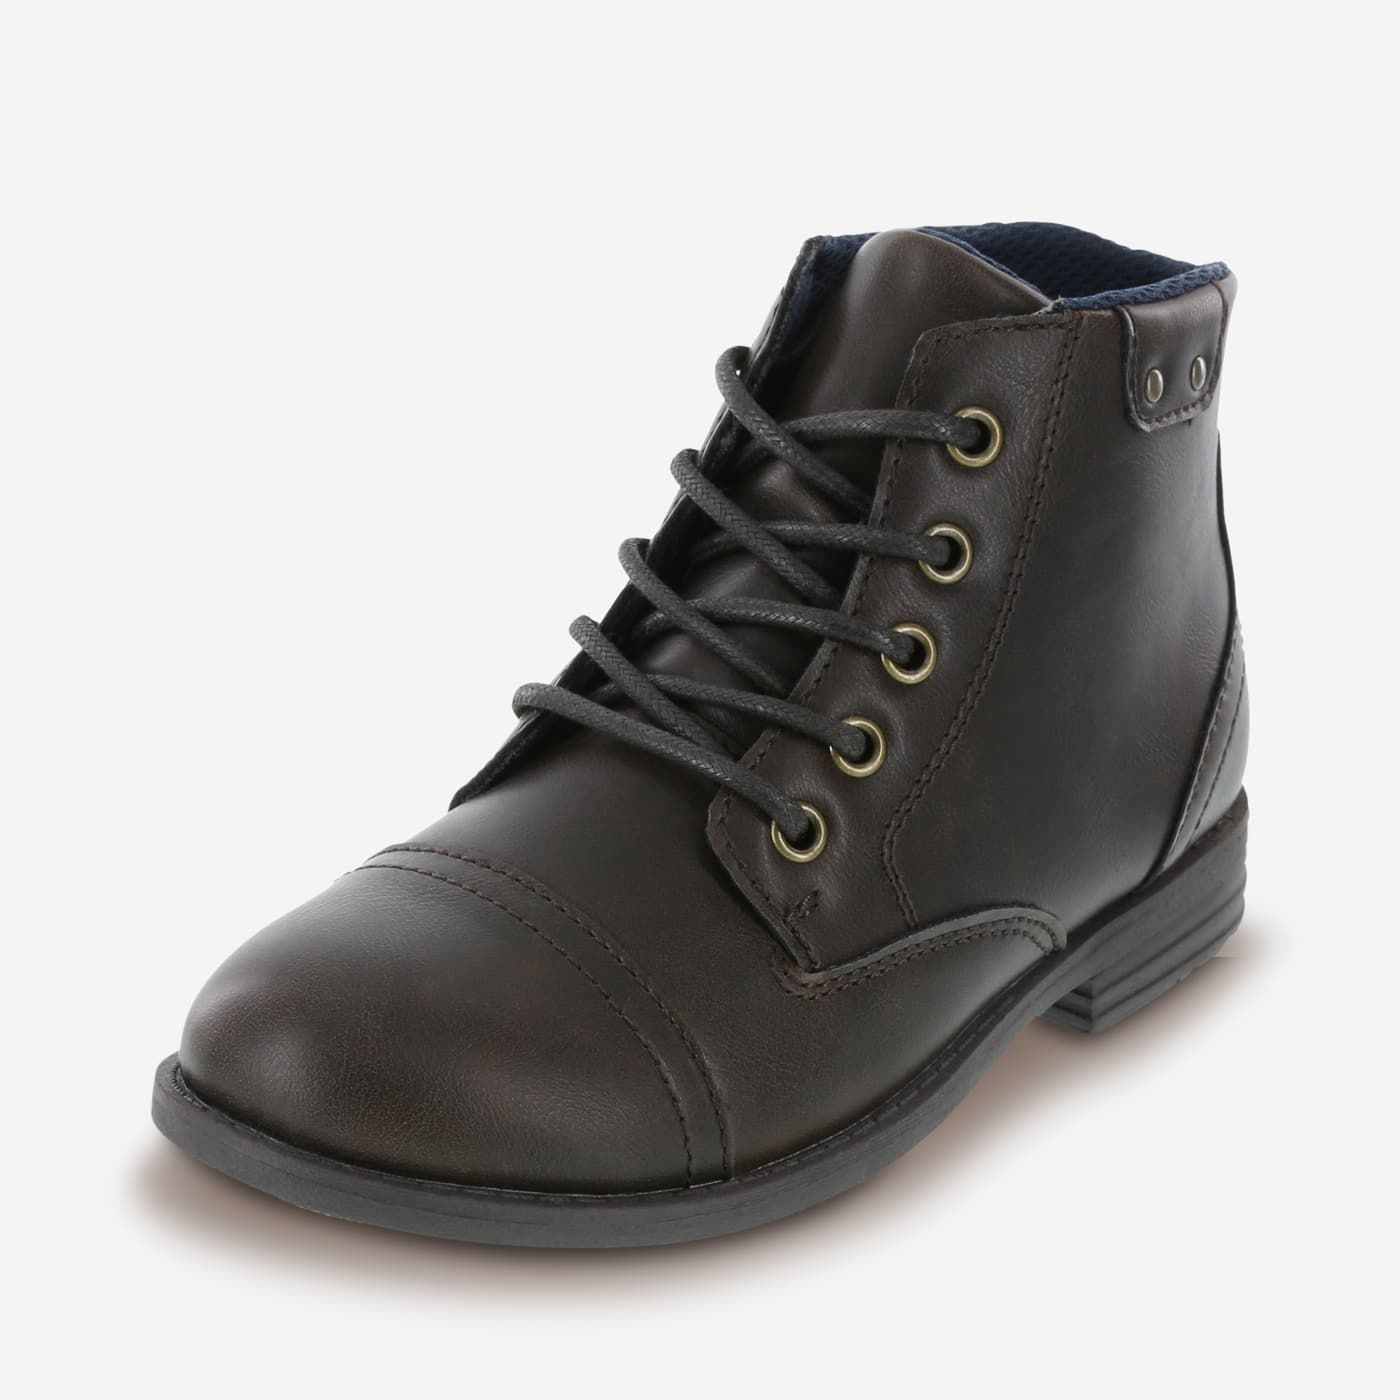 SmartFit Lincoln Boys' Boot | Payless